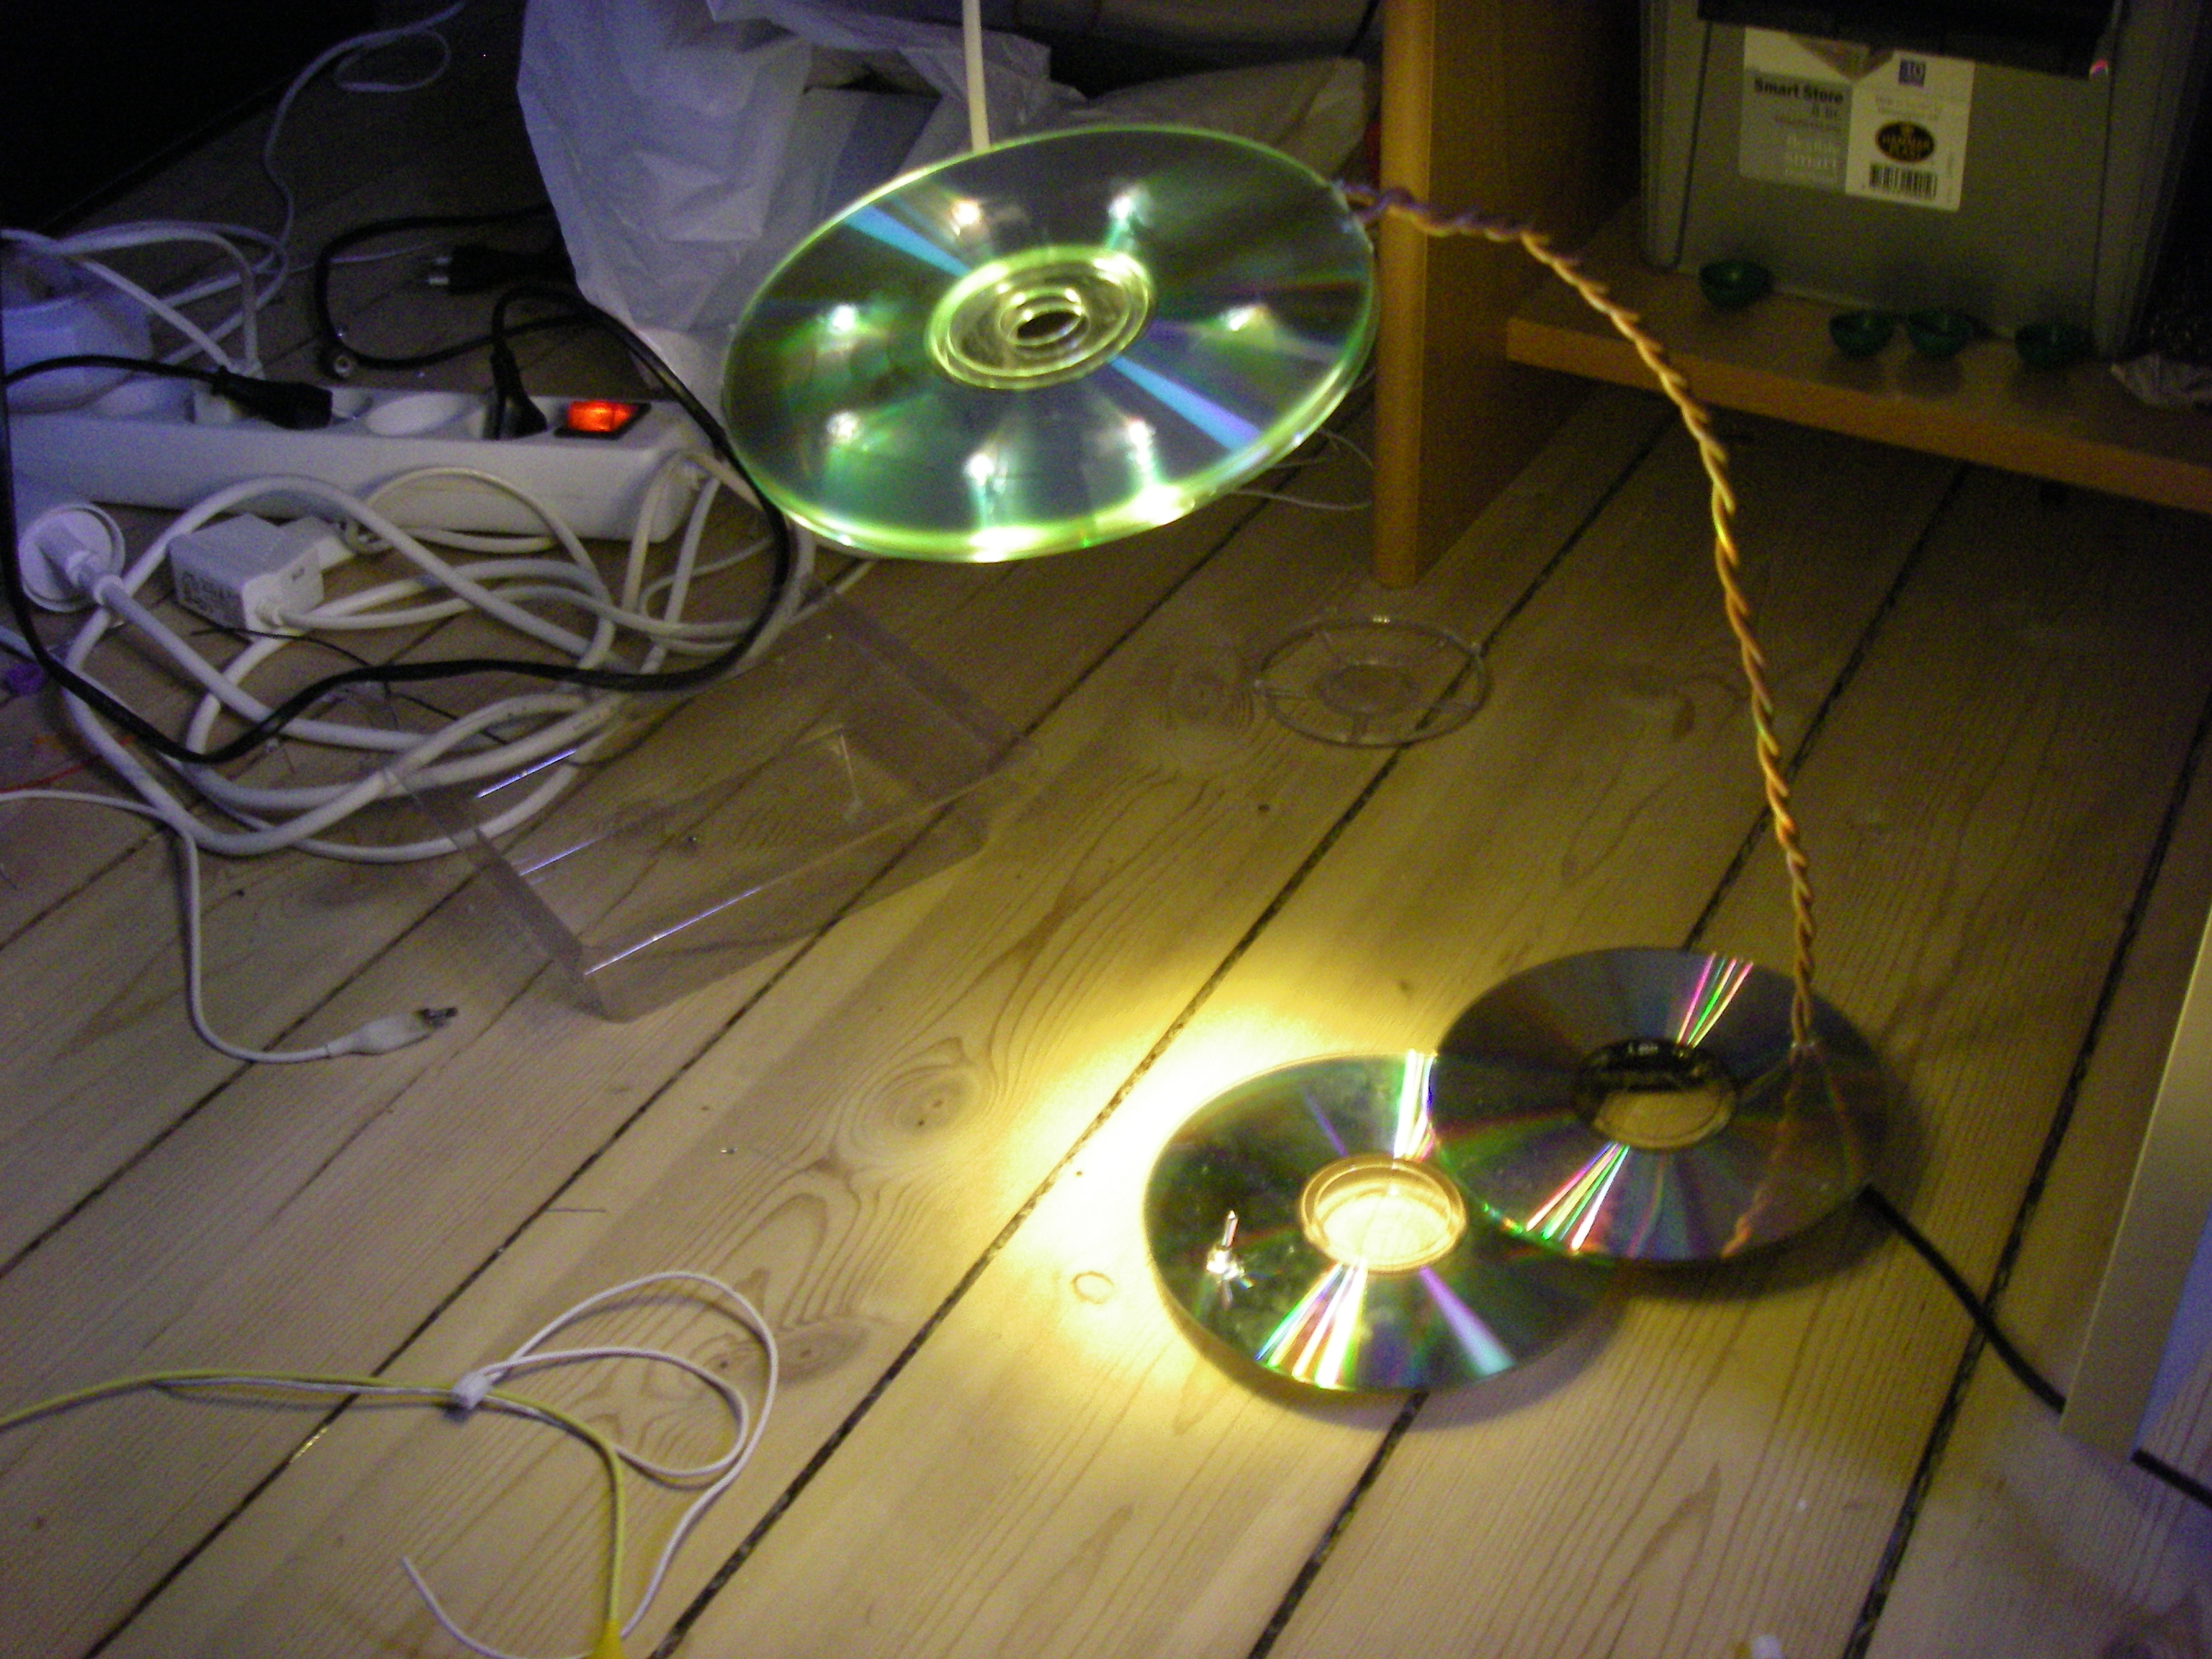 The USB powered LED CD lamp